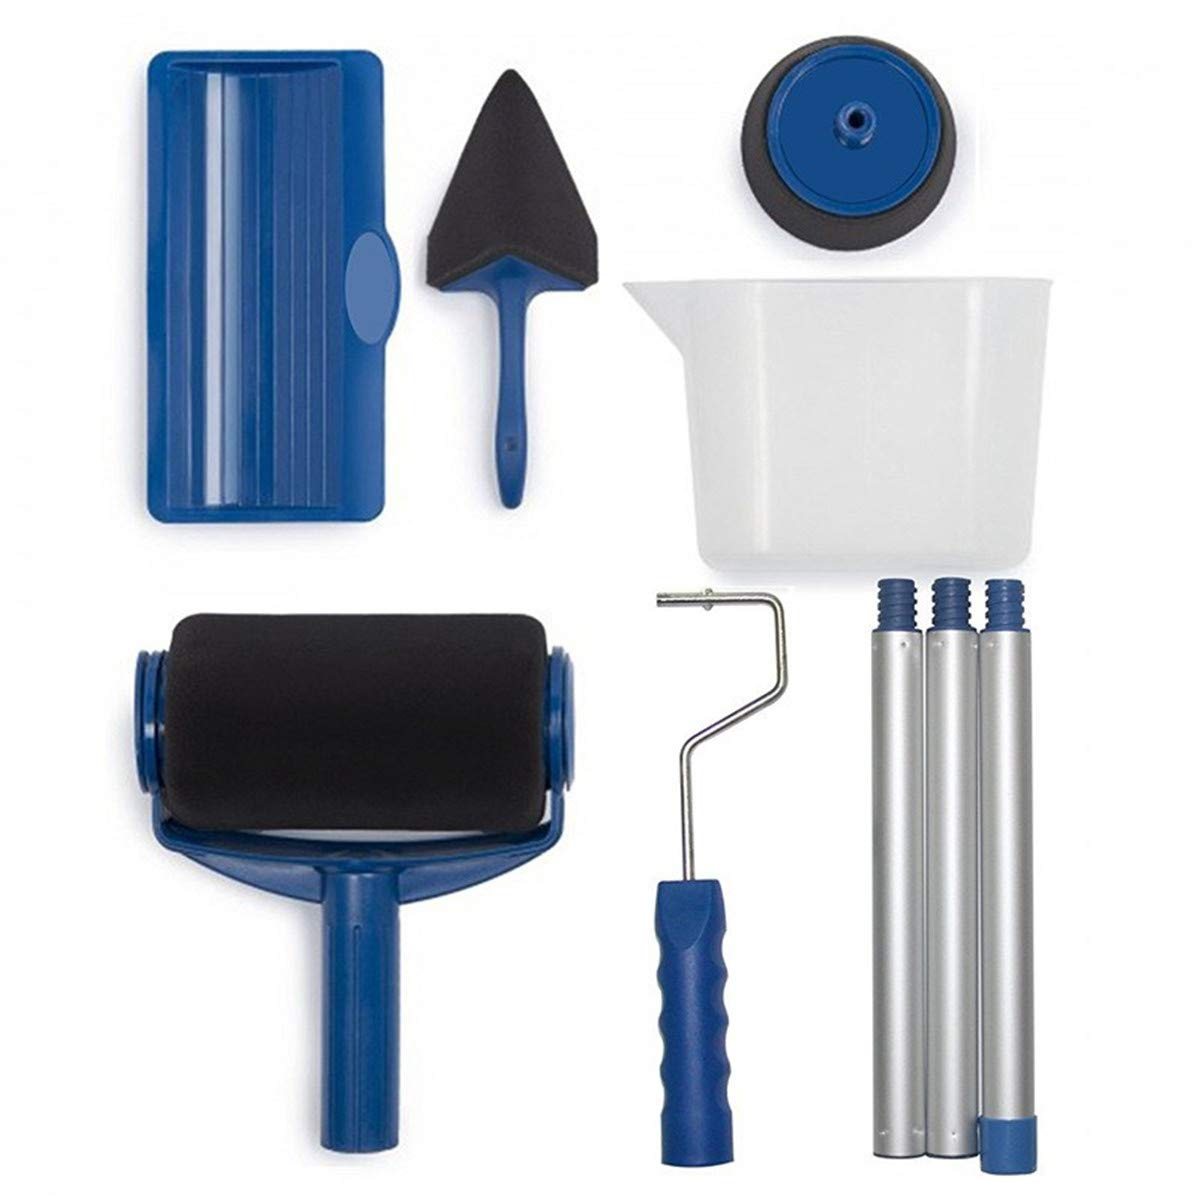 PaintRunner Pro Roller Brush Handle Tool Set of 6, Blue, Universal XIAOQINGWADE